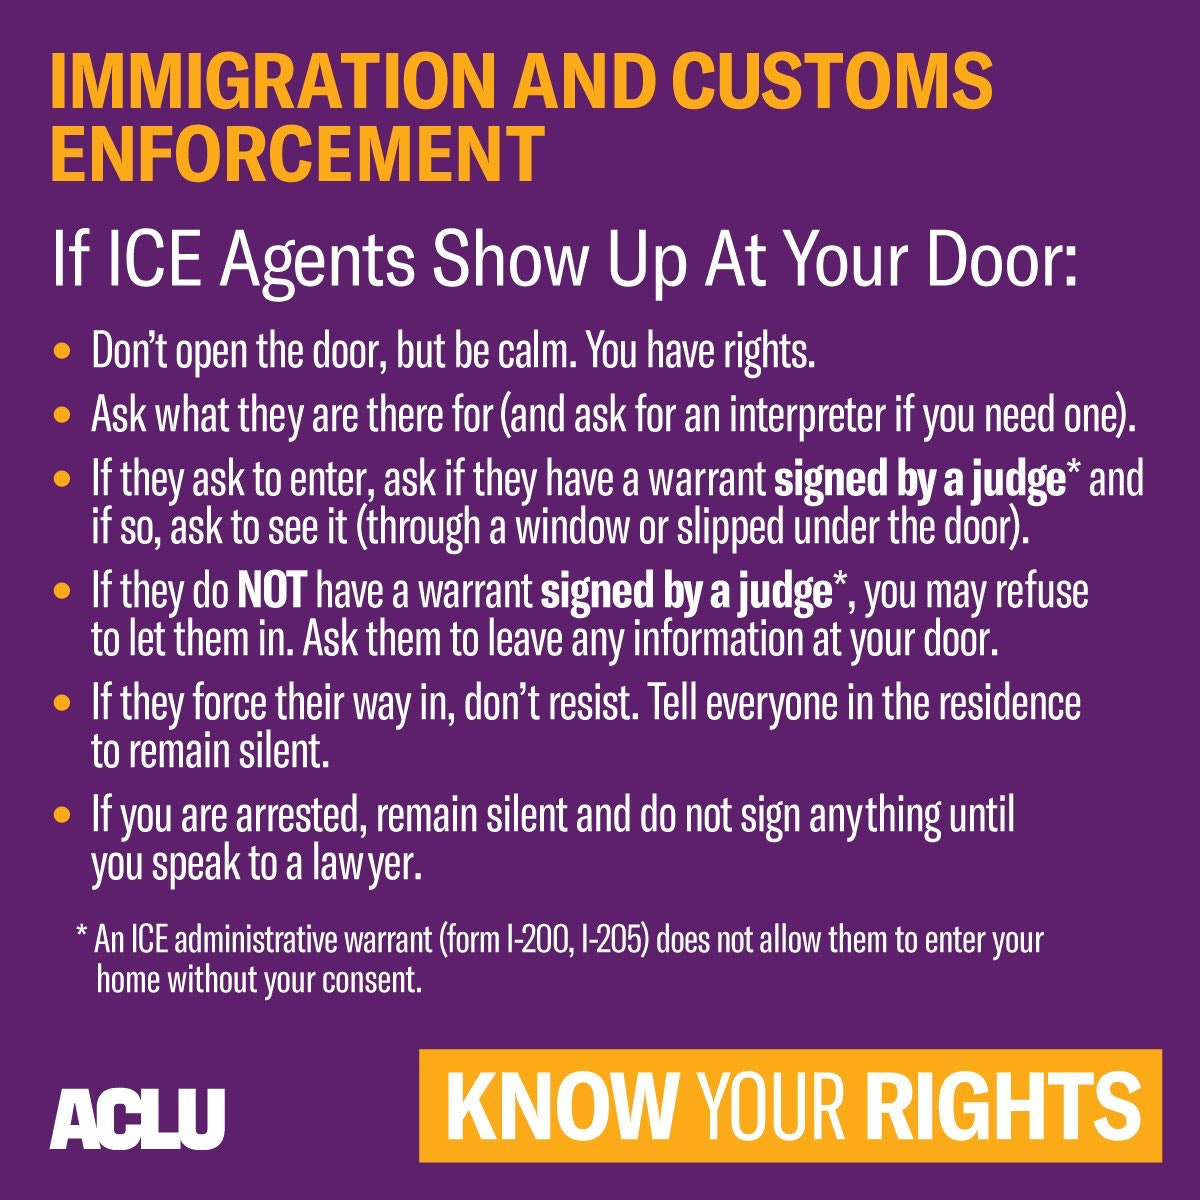 ICE, Immigration and customs enforcement, customs and border protection, customs and border patrol, border patrol, CBP, detention centers, immigration detention centers, migrants, immigrants, undocumented immigrants, illegal immigrants, illegal immigration, stories of ICE arresting u.s. citizens, stories of ICE detaining u.s. citizens, stories of border patrol arresting u.s. citizens, stories of border patrol detaining u.s. citizens, abolish ICE, concentration camps, immigrant camps, border camps, border camp conditions, immigrant camp conditions, ICE camp conditions, immigrant detention conditions, Francisco Galicia,